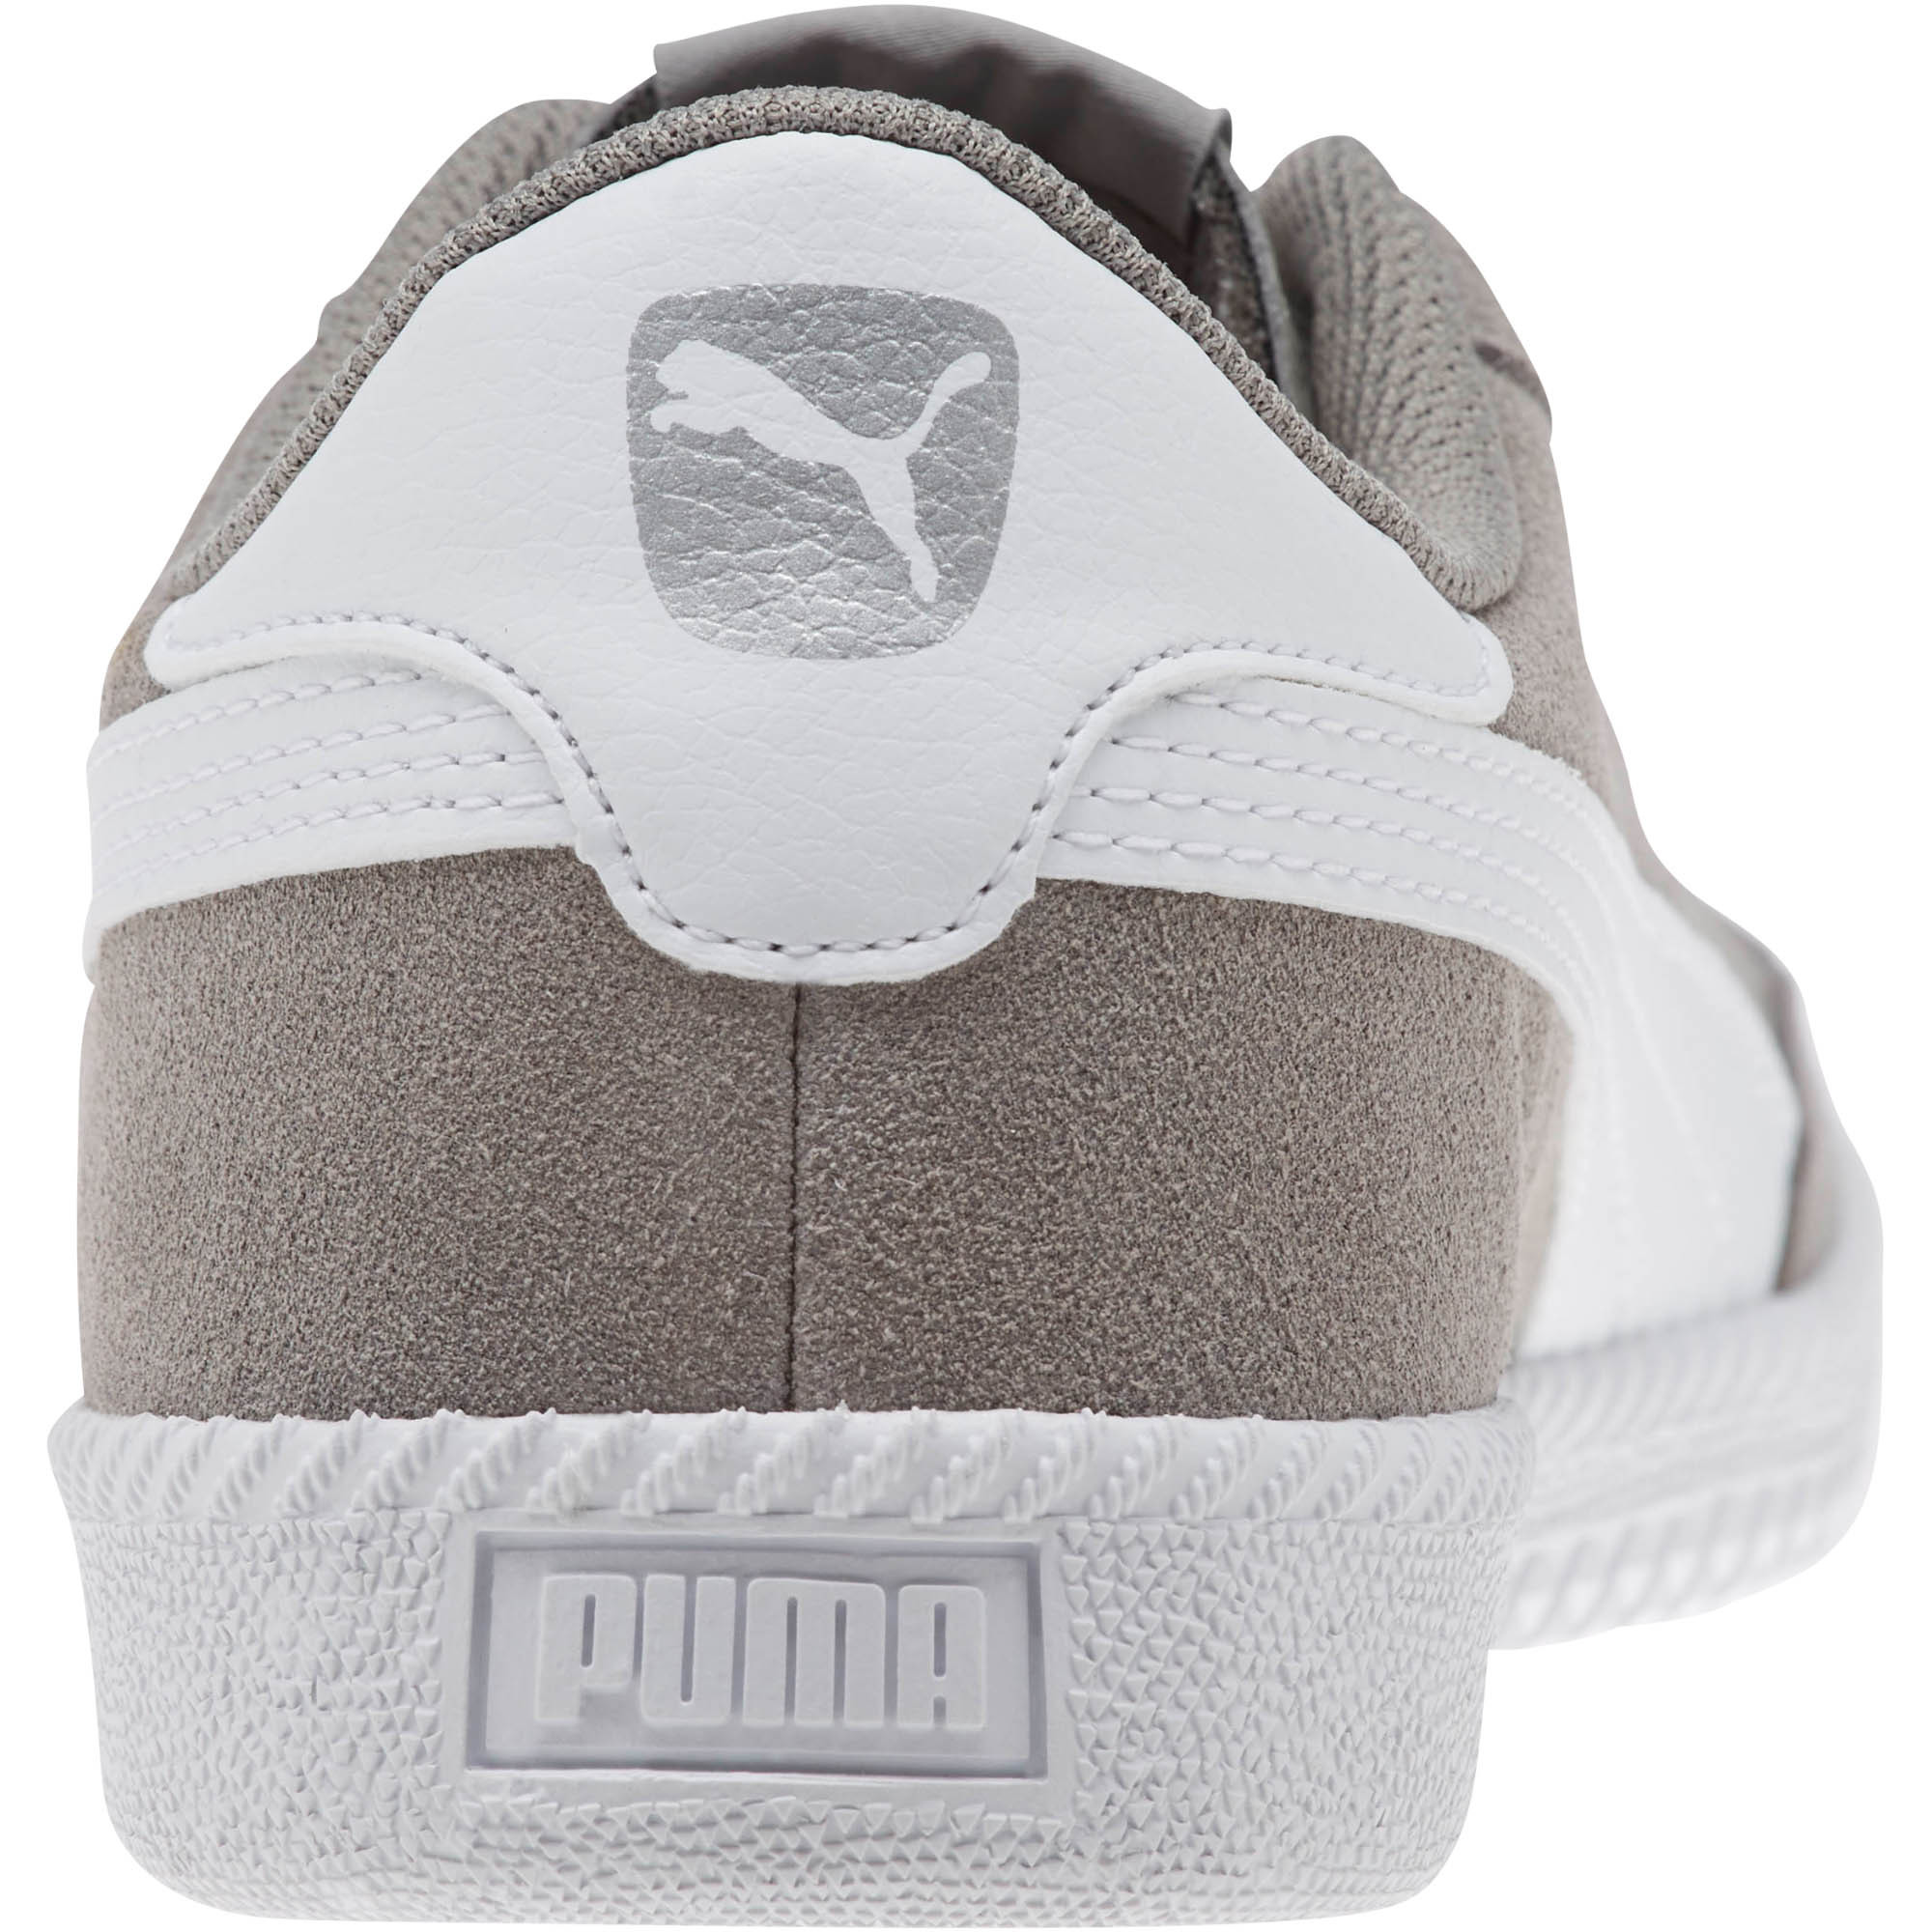 PUMA-Astro-Cup-Suede-Sneakers-Men-Shoe-Basics thumbnail 18